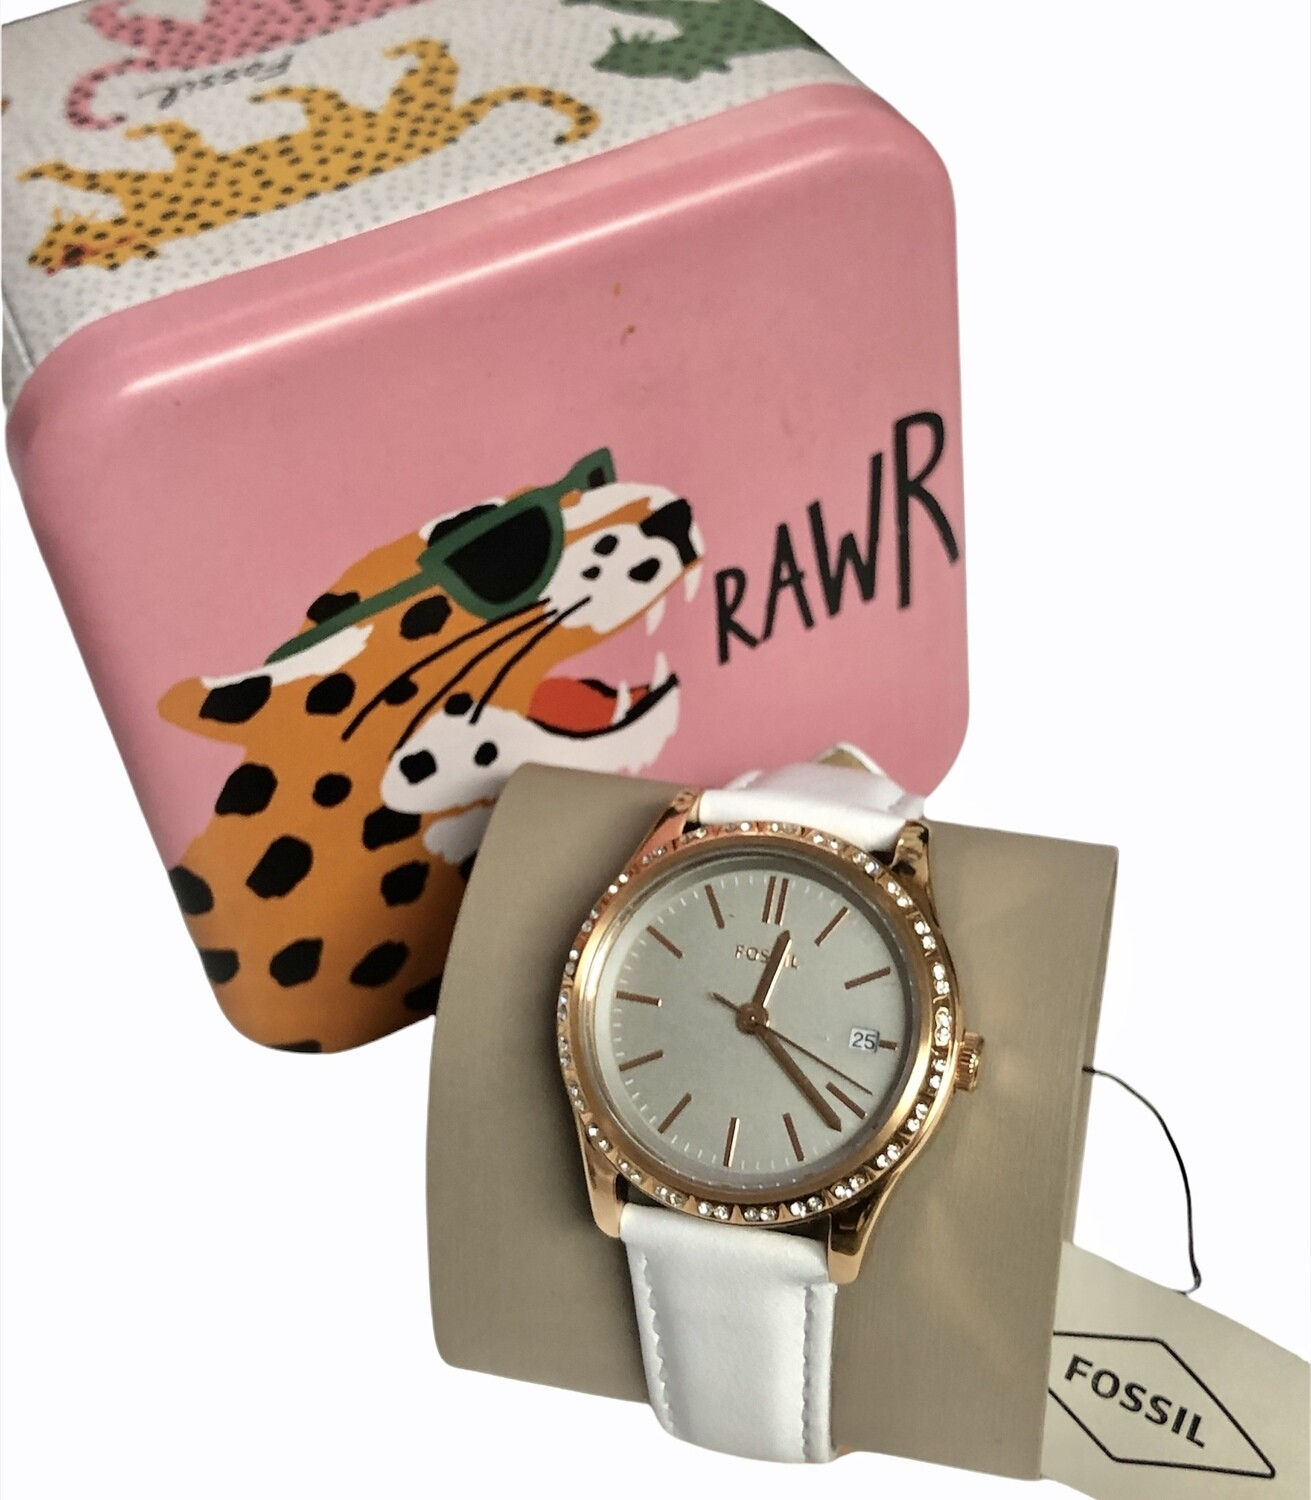 NEW FOSSIL Rose Gold & Stone Like Style Watch $119